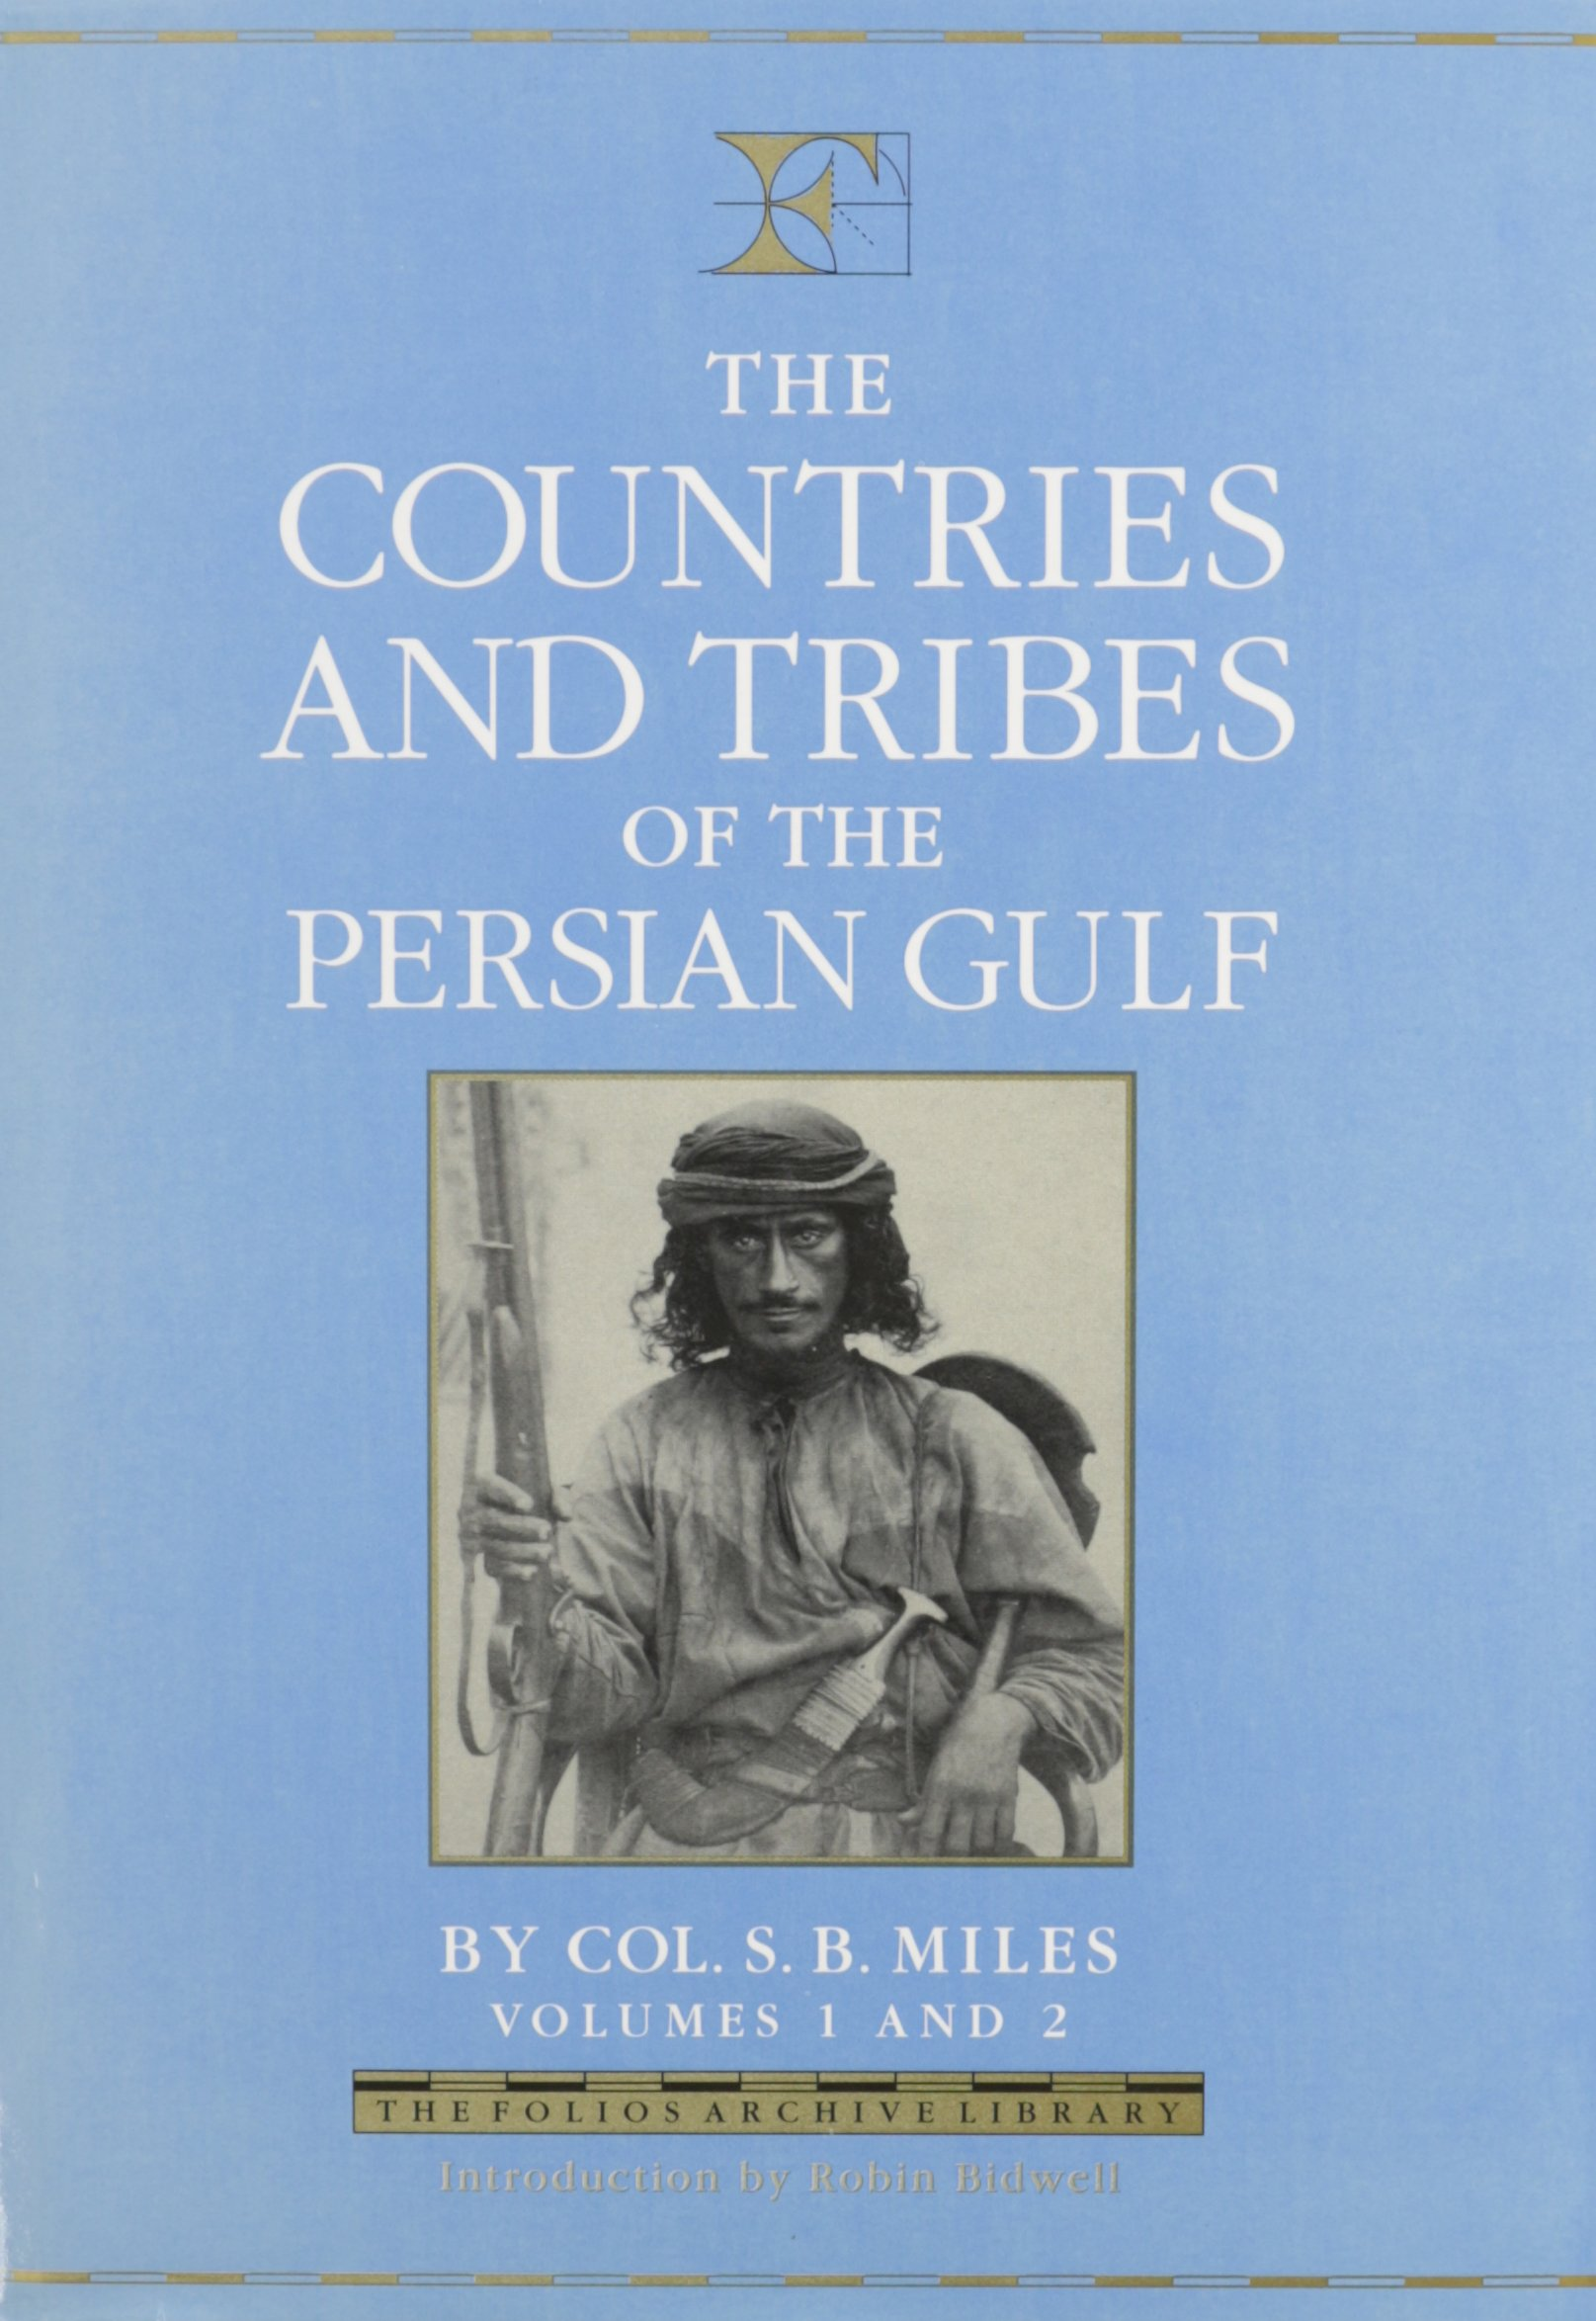 The Countries and Tribes of the Persian Gulf (Folios Archive Library)